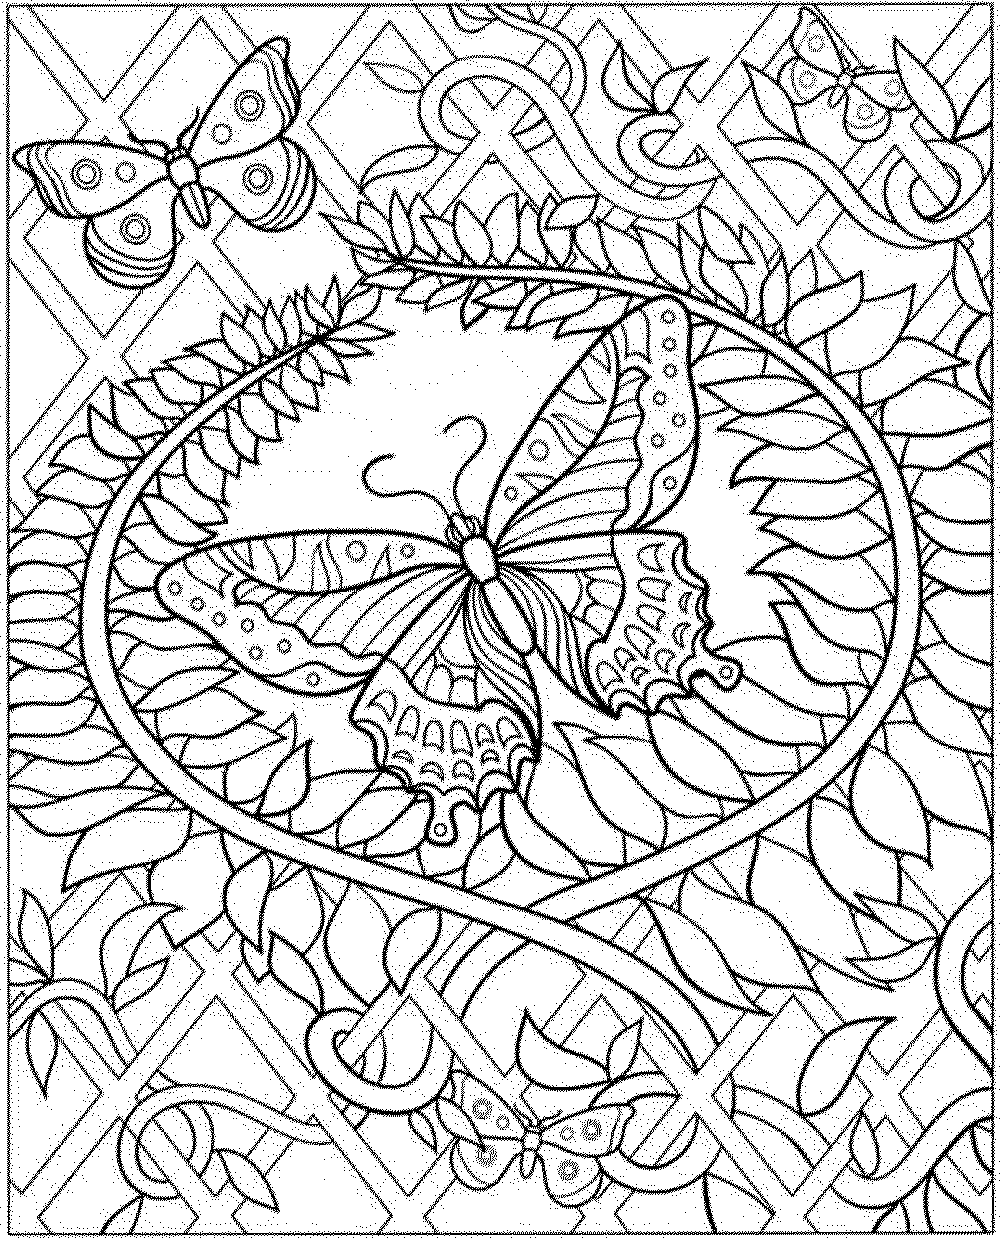 intricate coloring pages - Intricate Coloring Pages For Adults